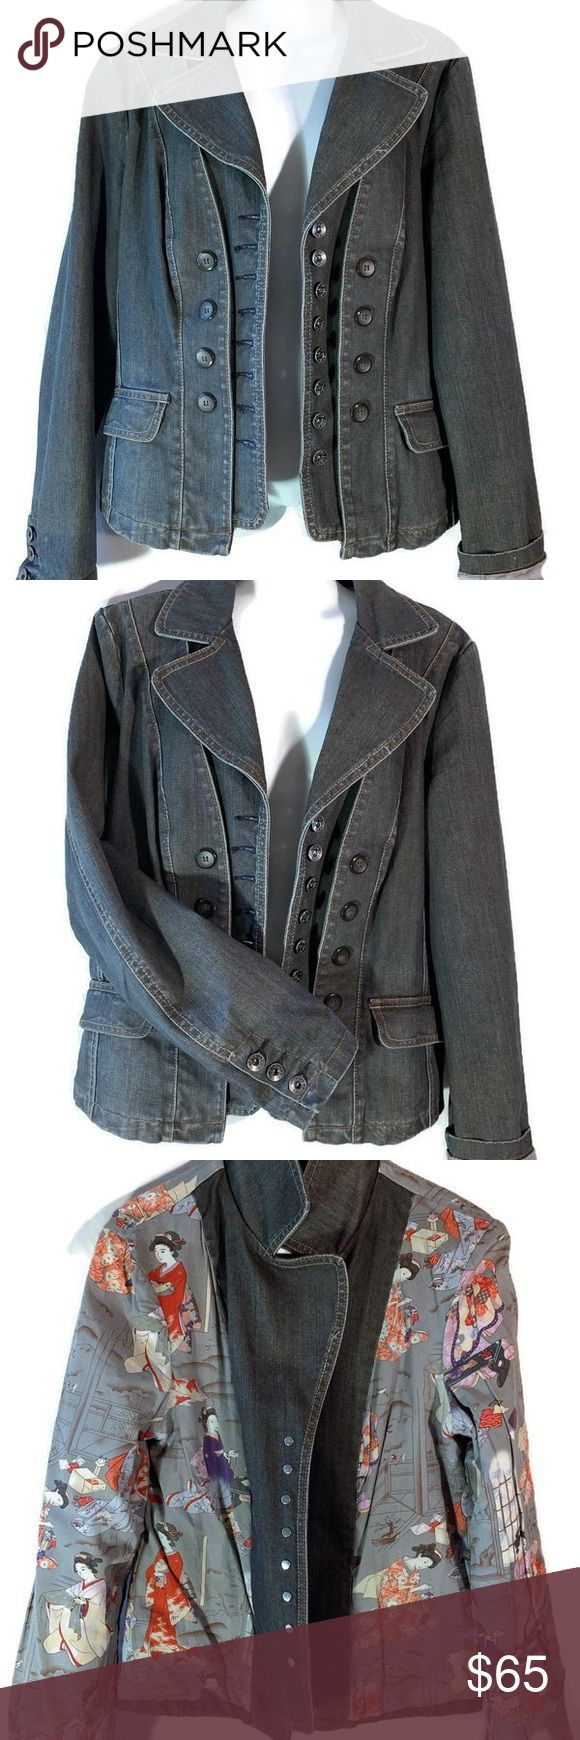 MUST SEE Geisha Double breasted denim jean jacket …